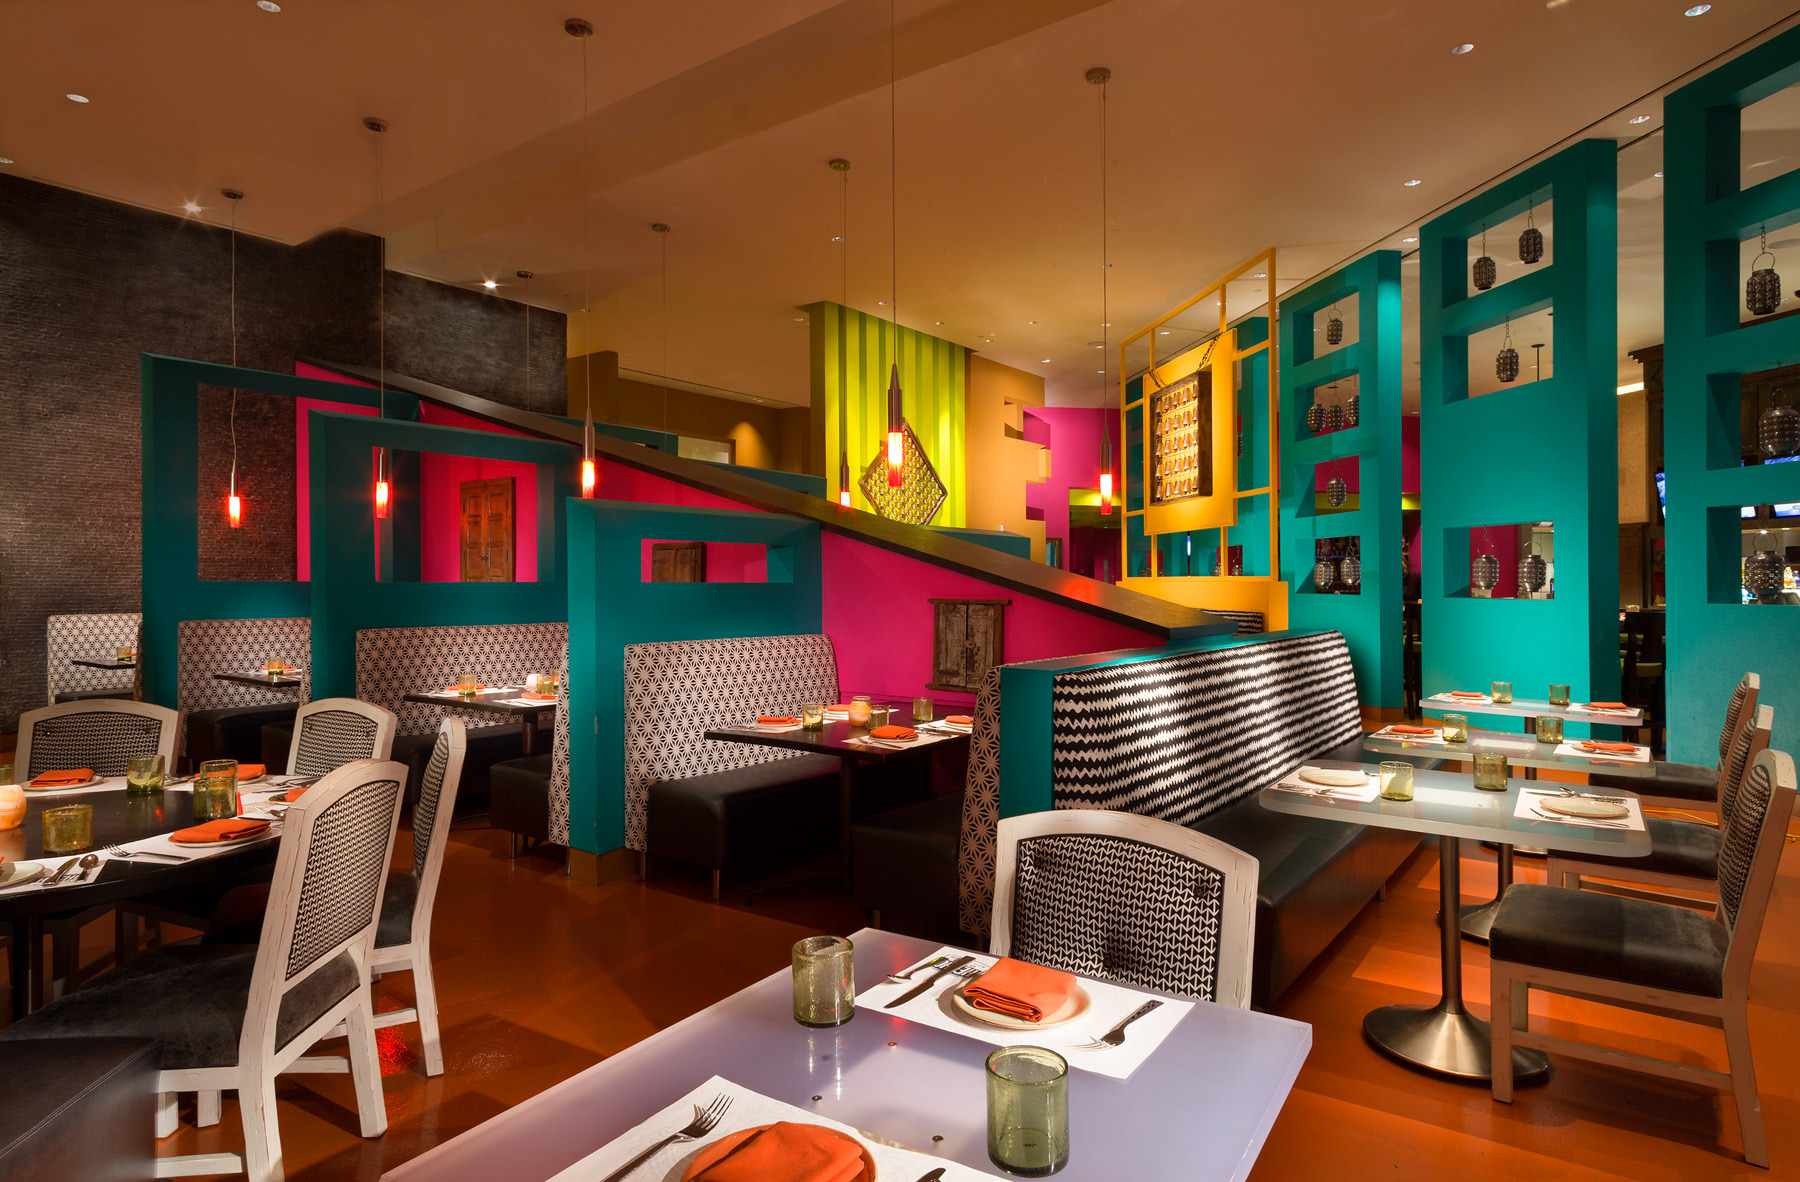 A Mexican restaurant with bright decor.